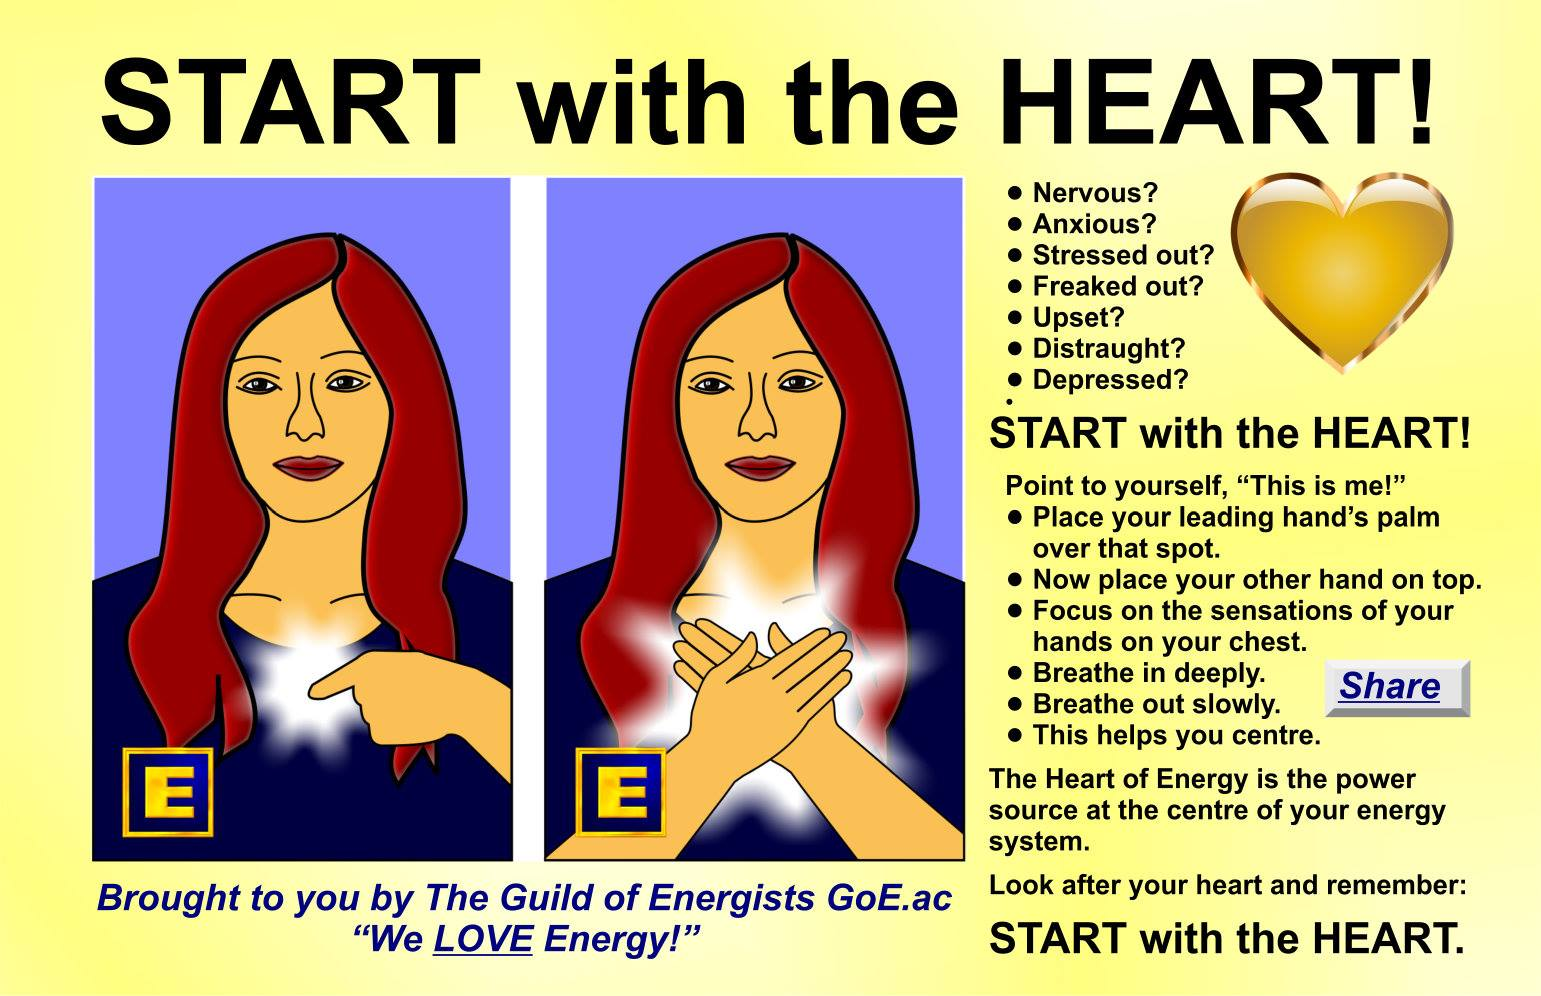 Heart Healing Made Simple: Start With The Heart! Heart Healing Diagram